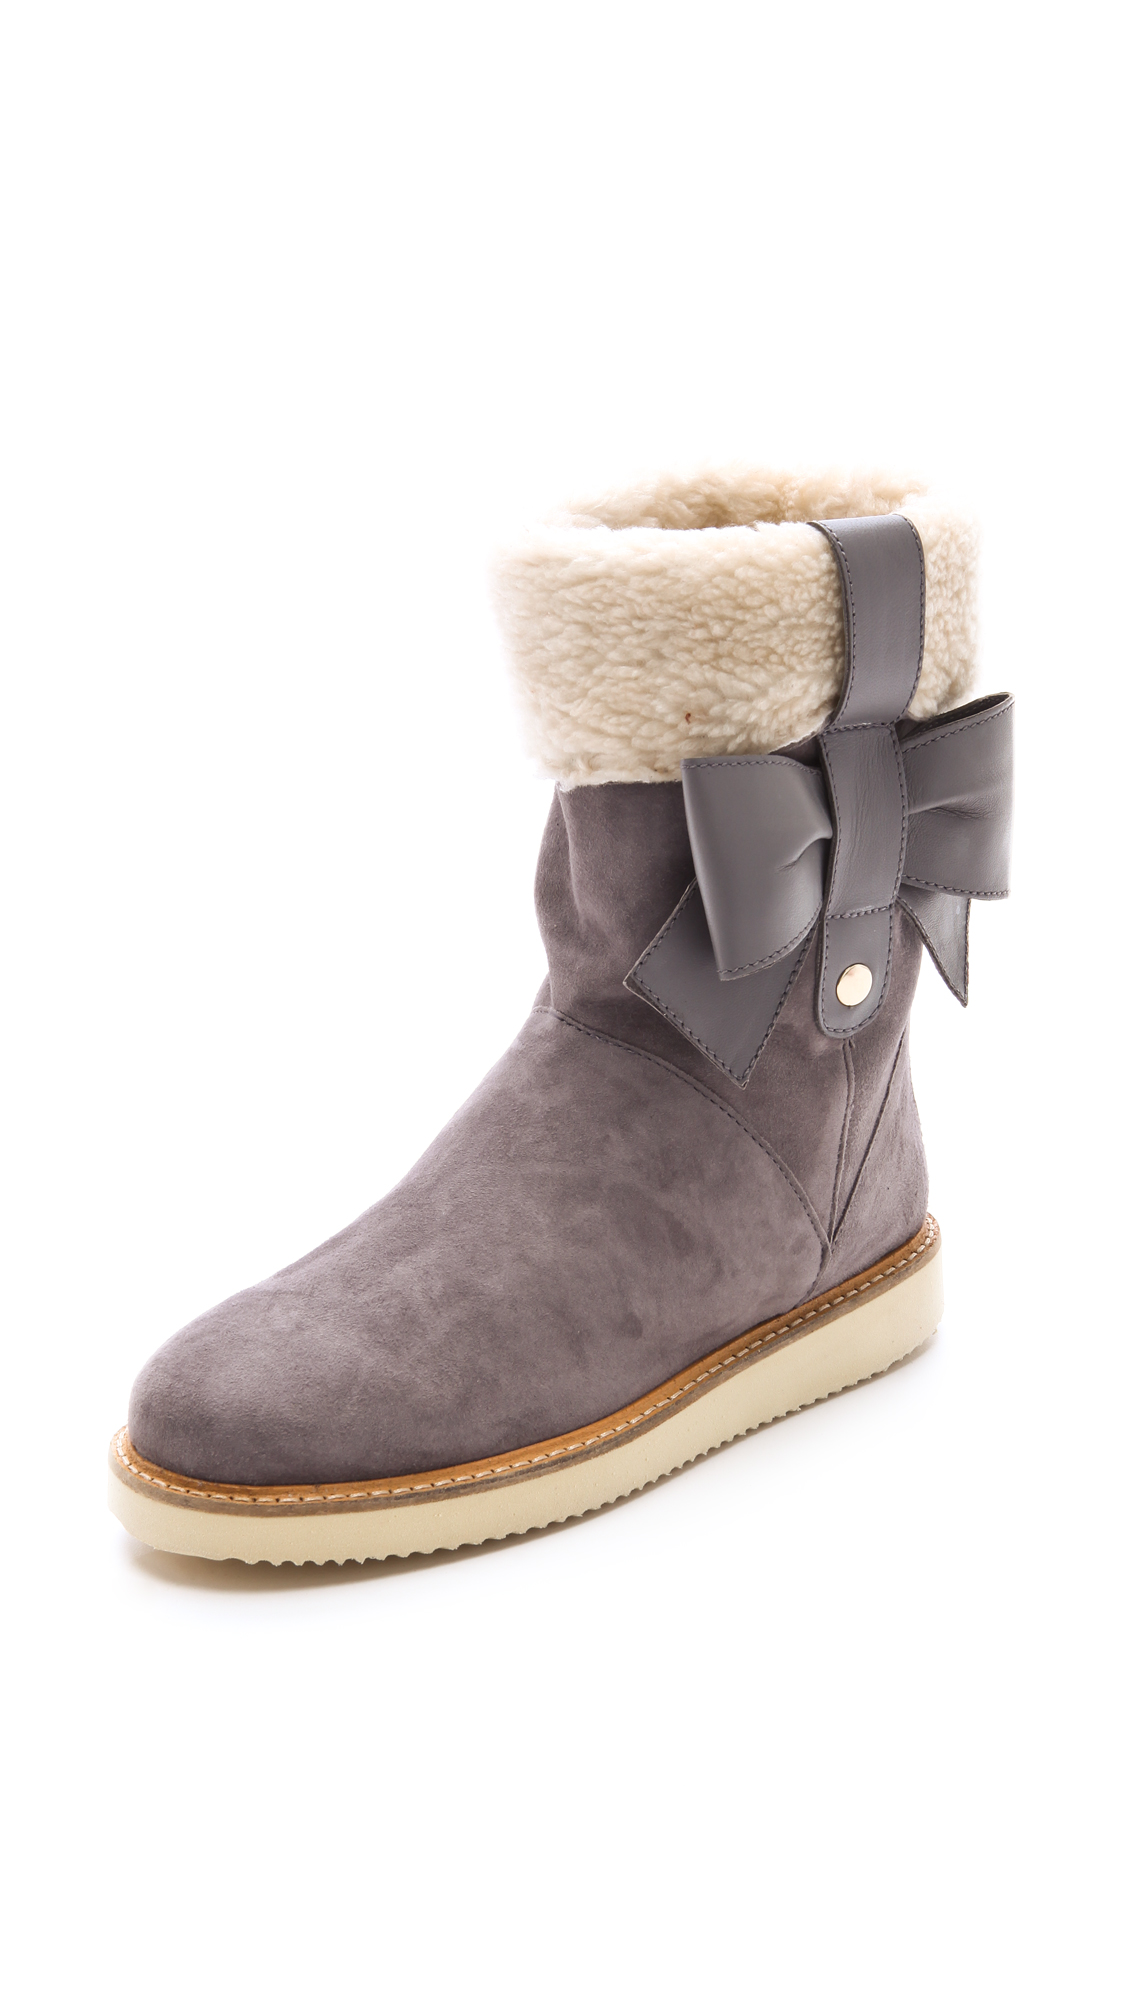 531427eb1 Lyst - RED Valentino Sherpa Boots in Gray